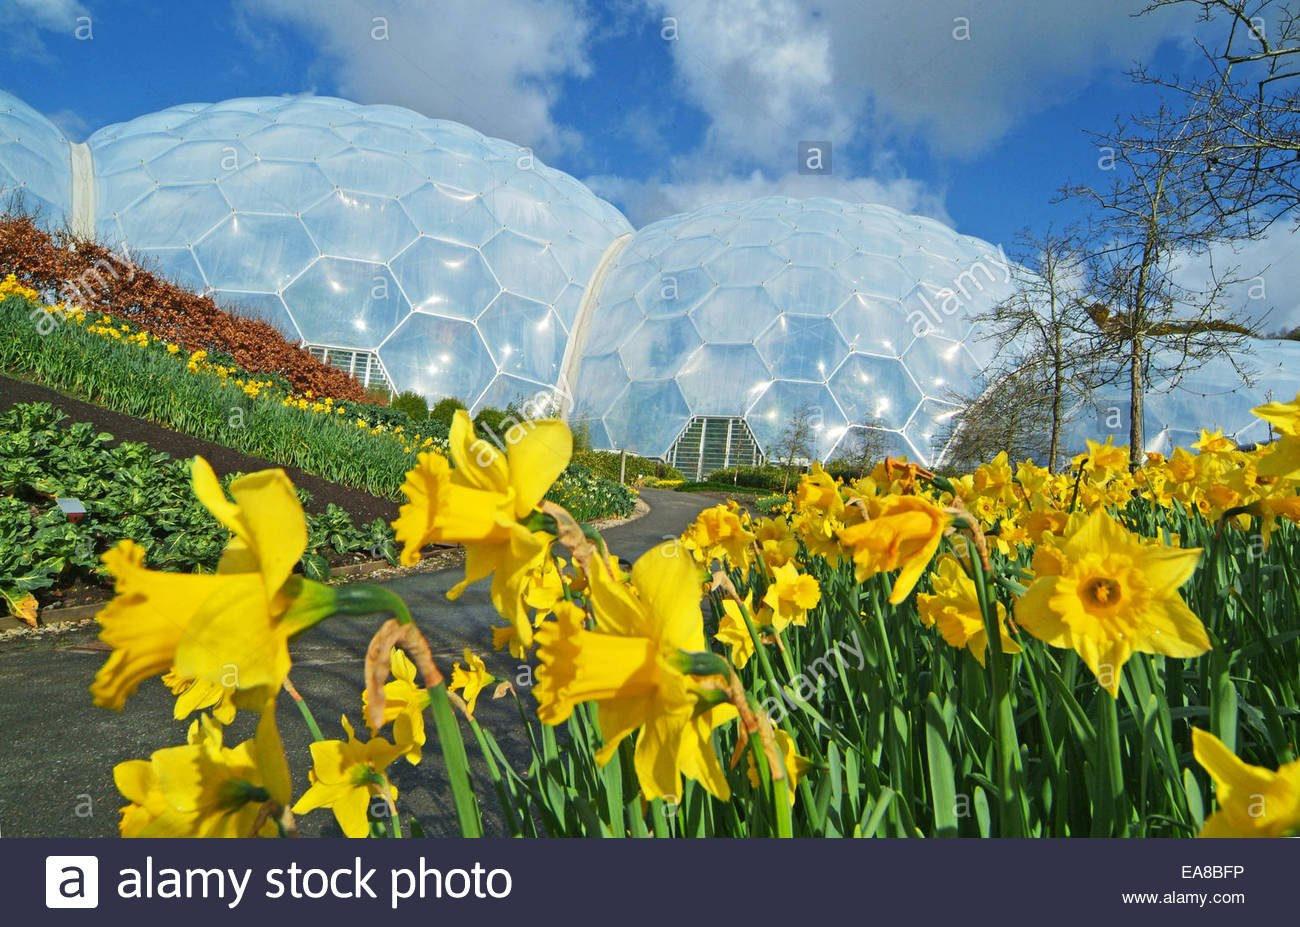 Daffodils in flower at the Eden Project with biomes in background 1300x927